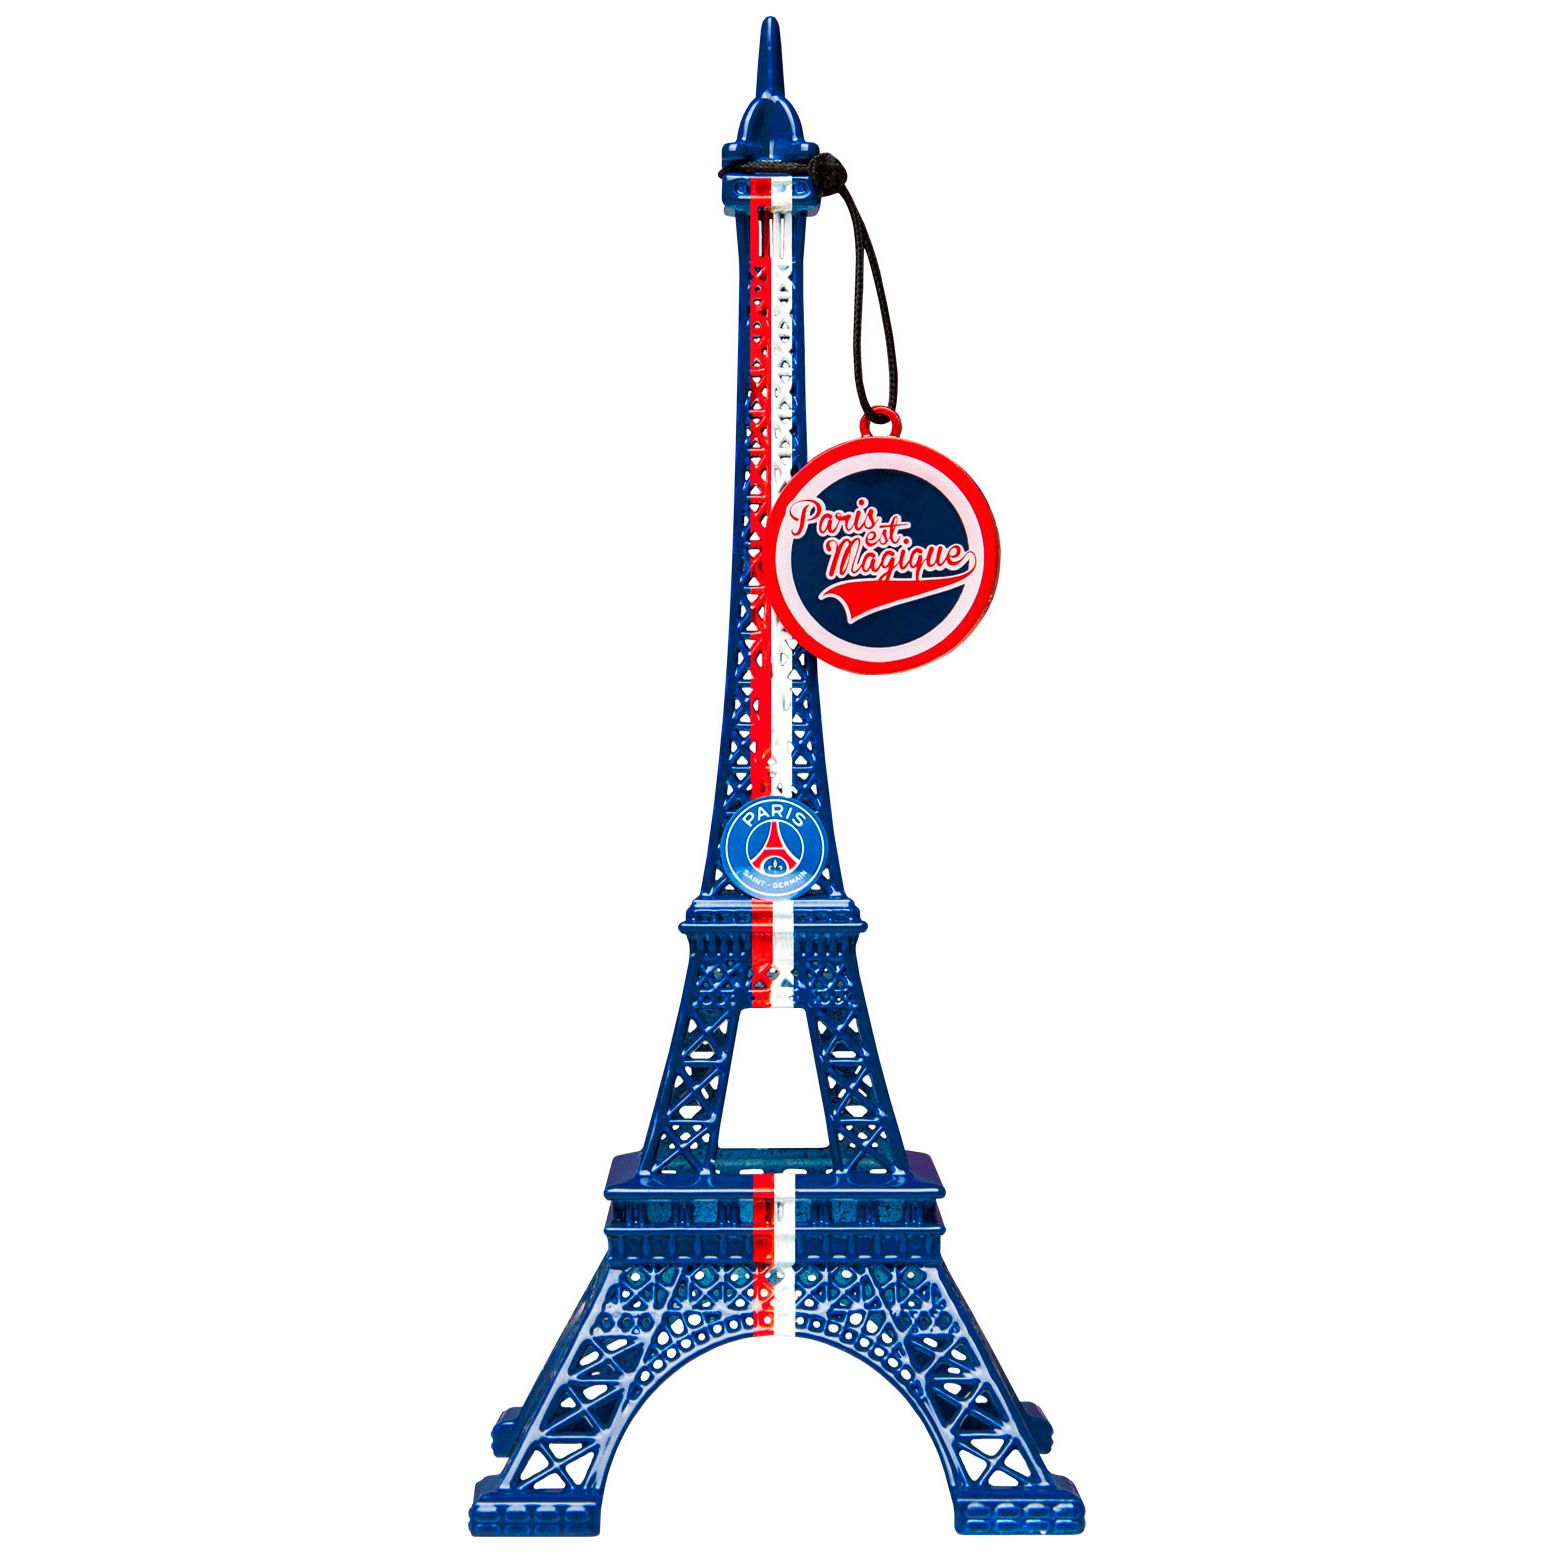 Eiffel Tower Psg Number 10 Paris Saint Germain Football Team Minigus 15 Cm Merci Gustave Psg Fond D Ecran Foot